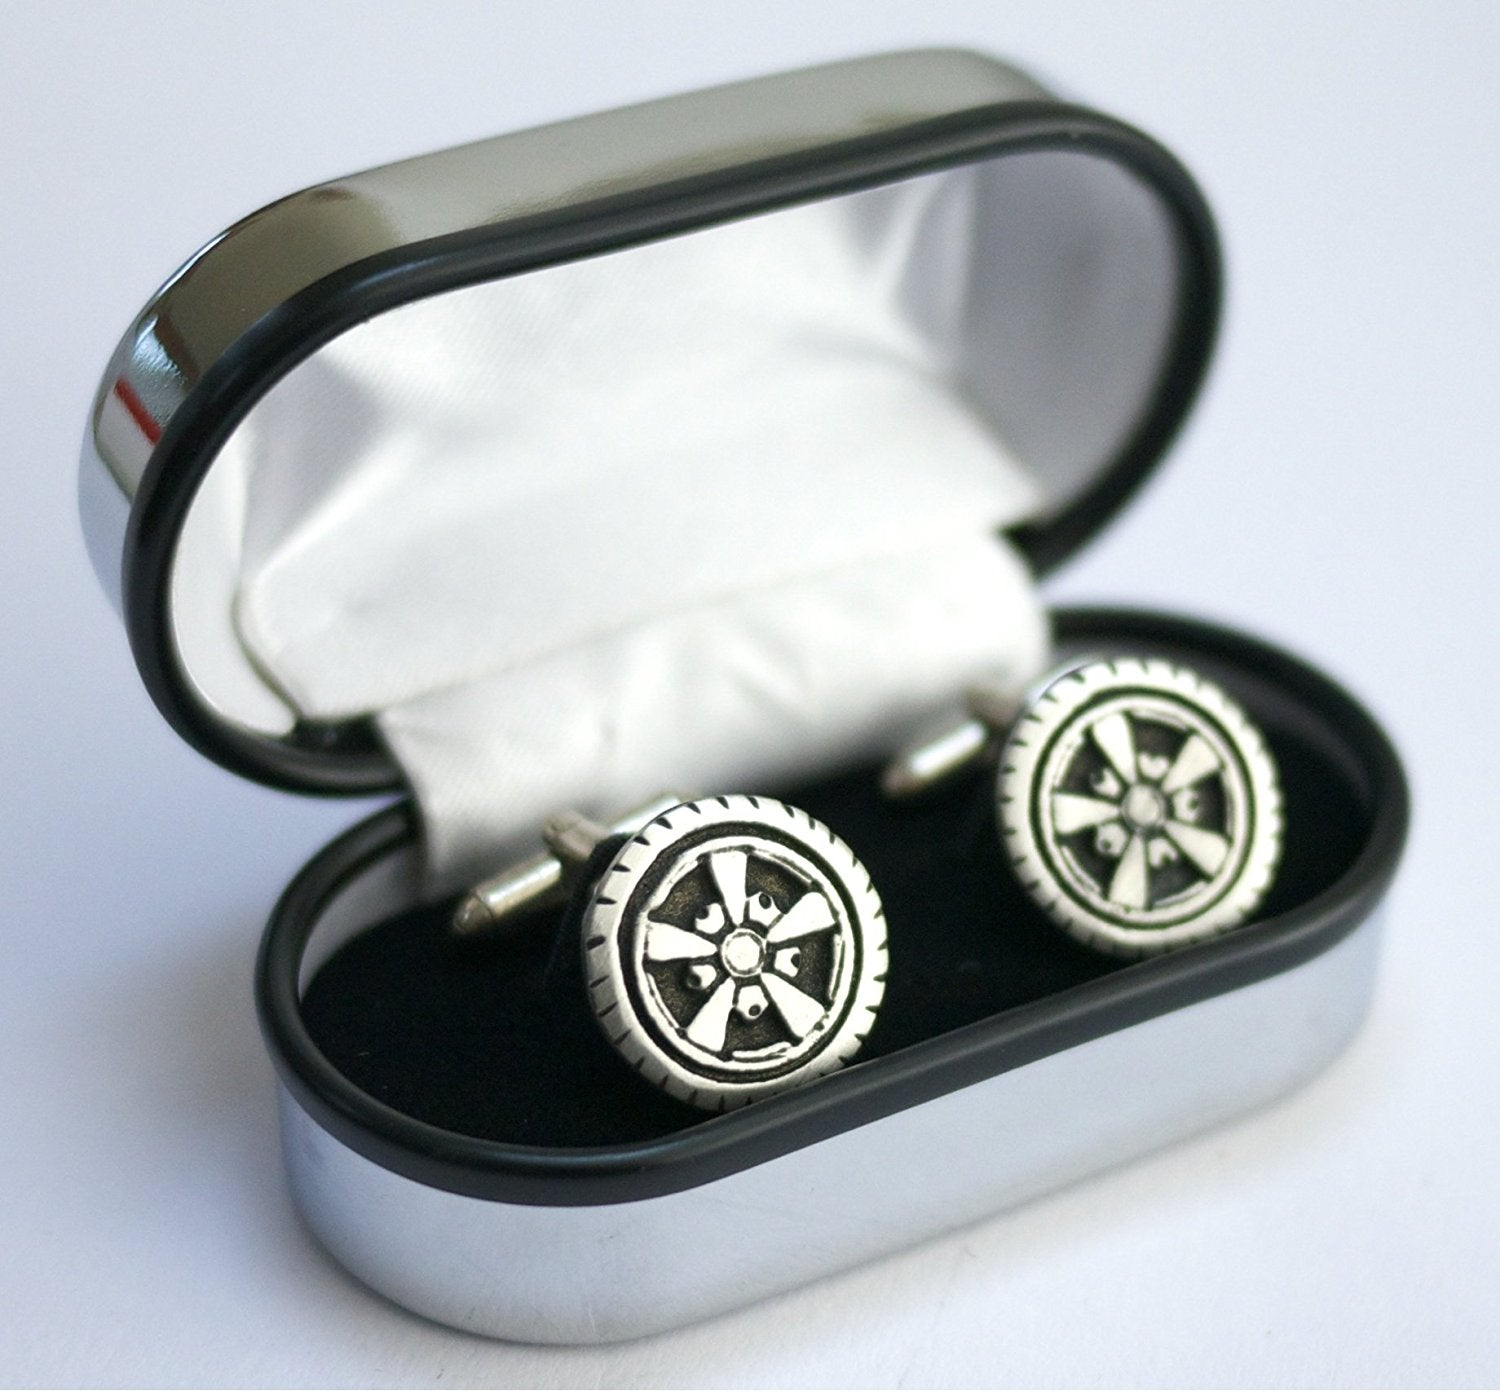 Alloy wheel cuff links , the perfect gift for a man